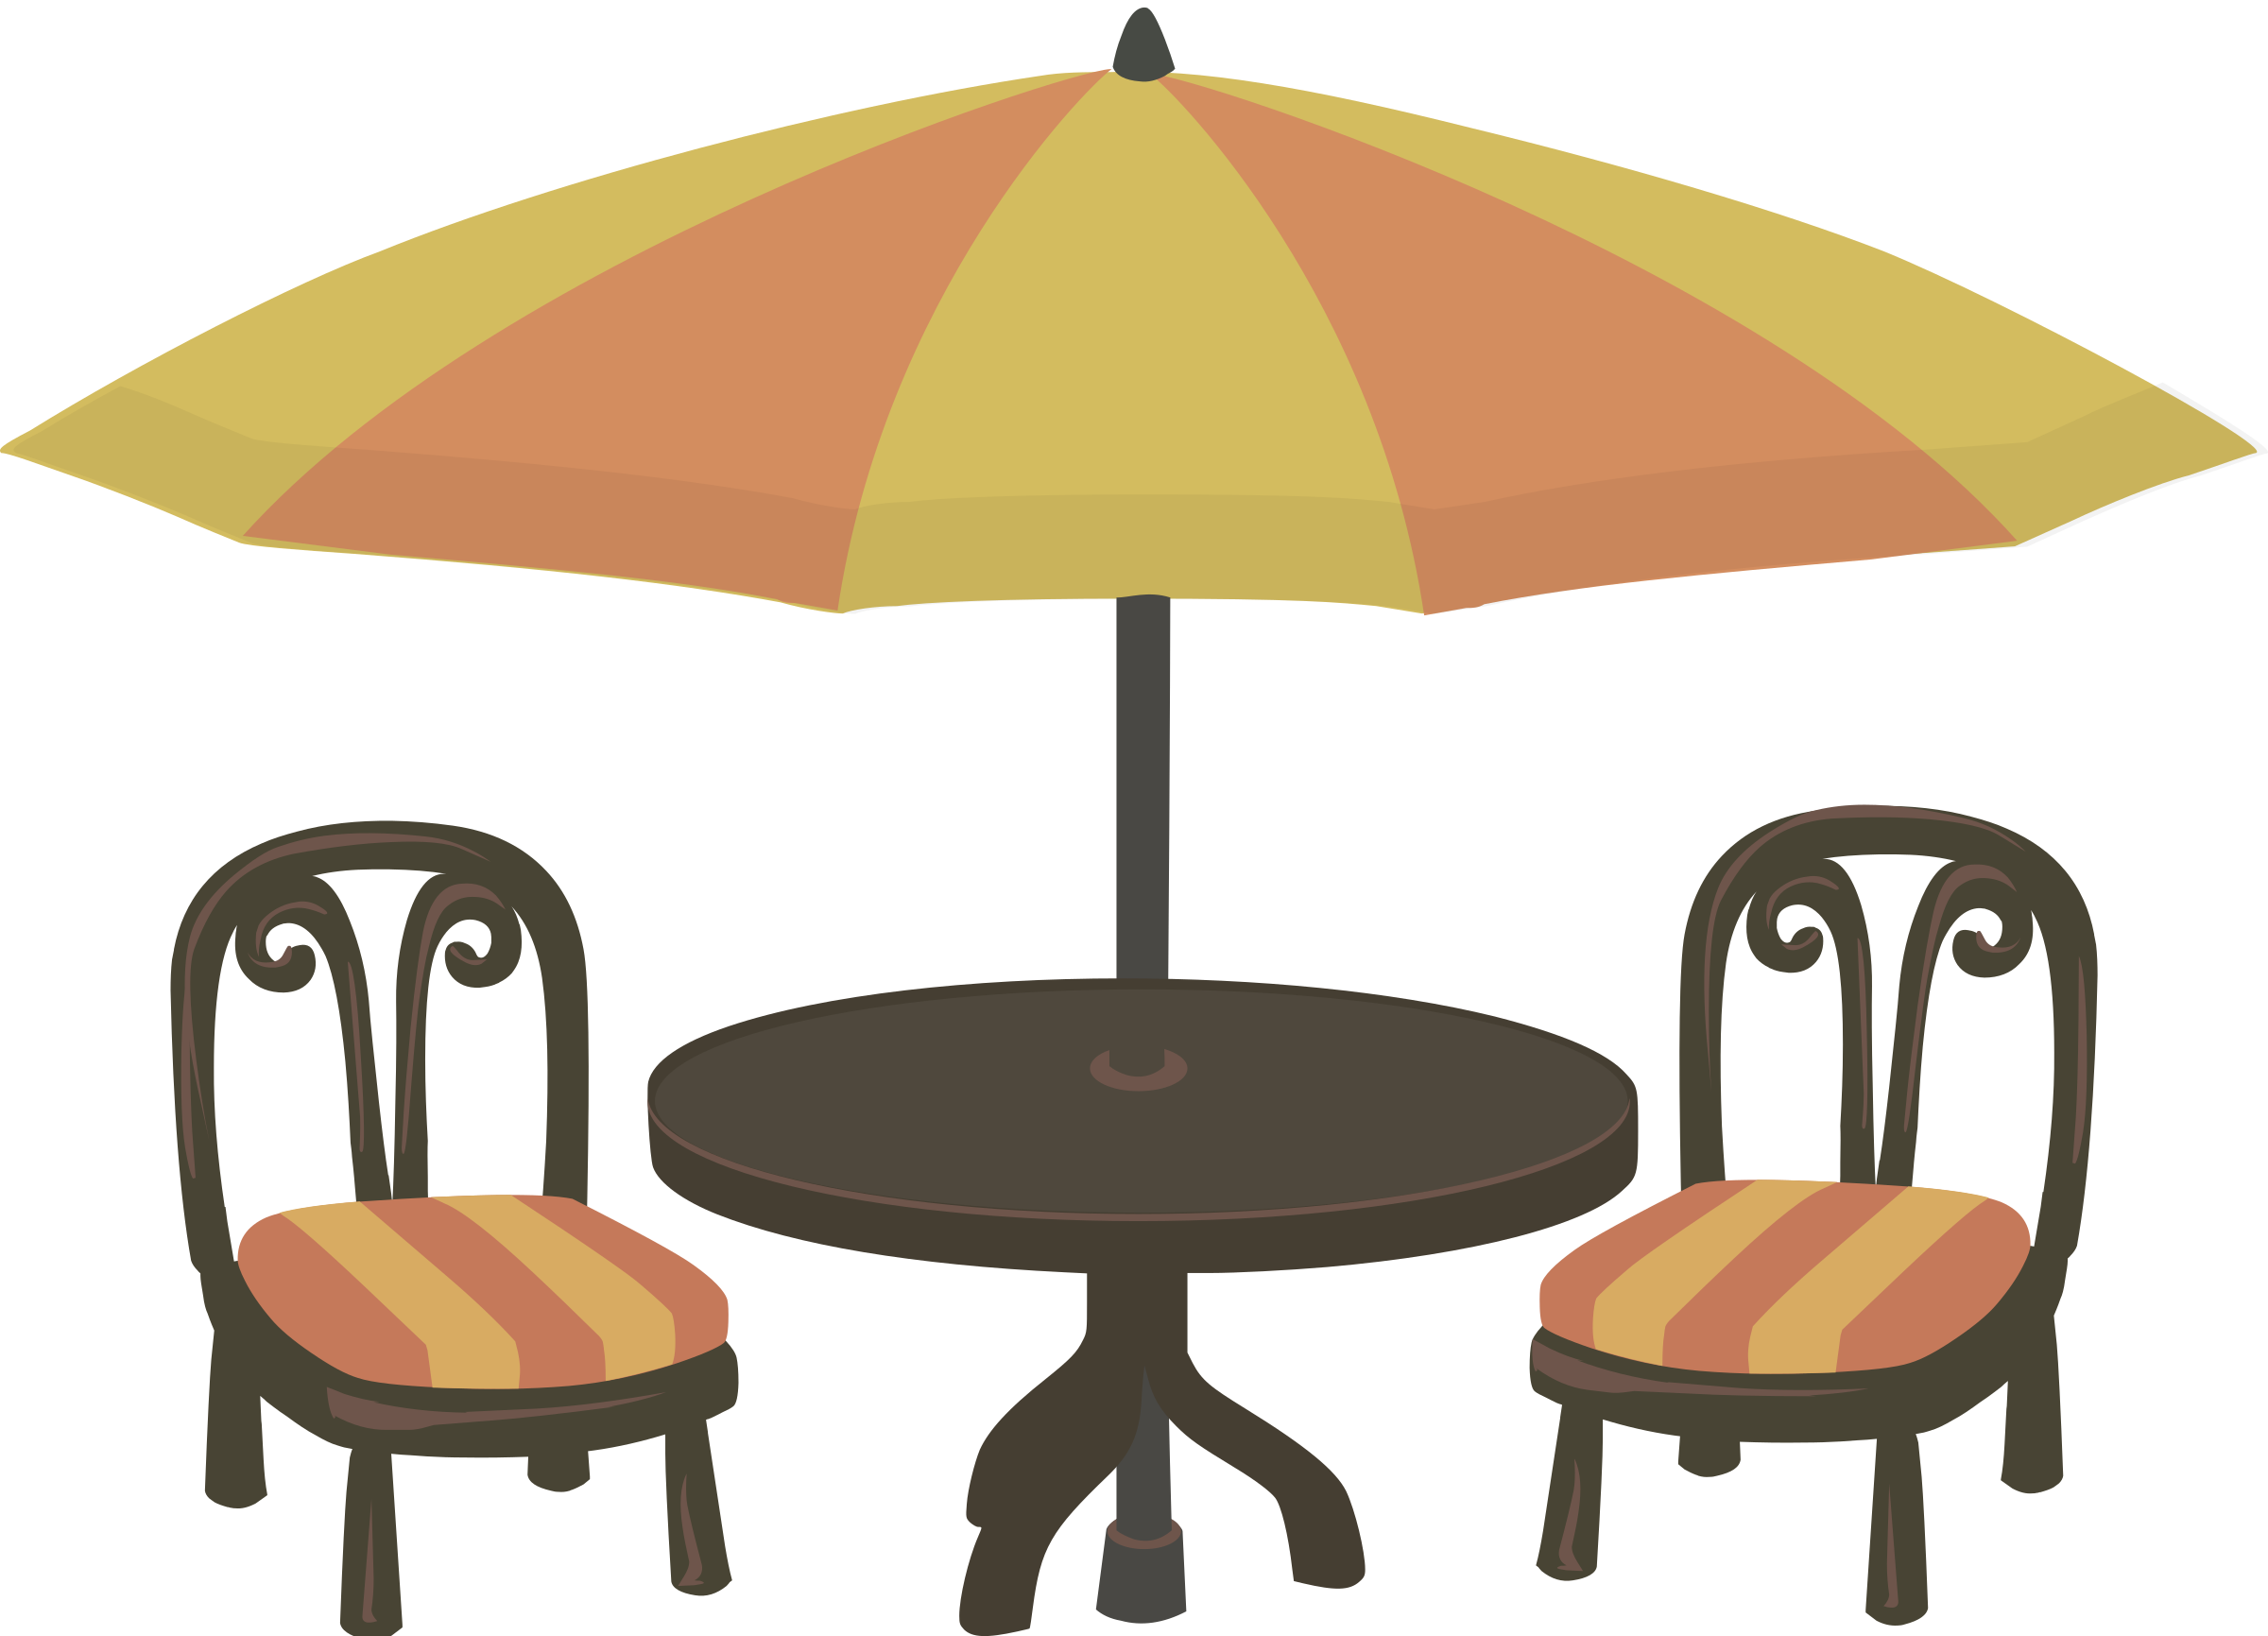 Furniture clipart furniture shop. Outdoor cafe seating icons